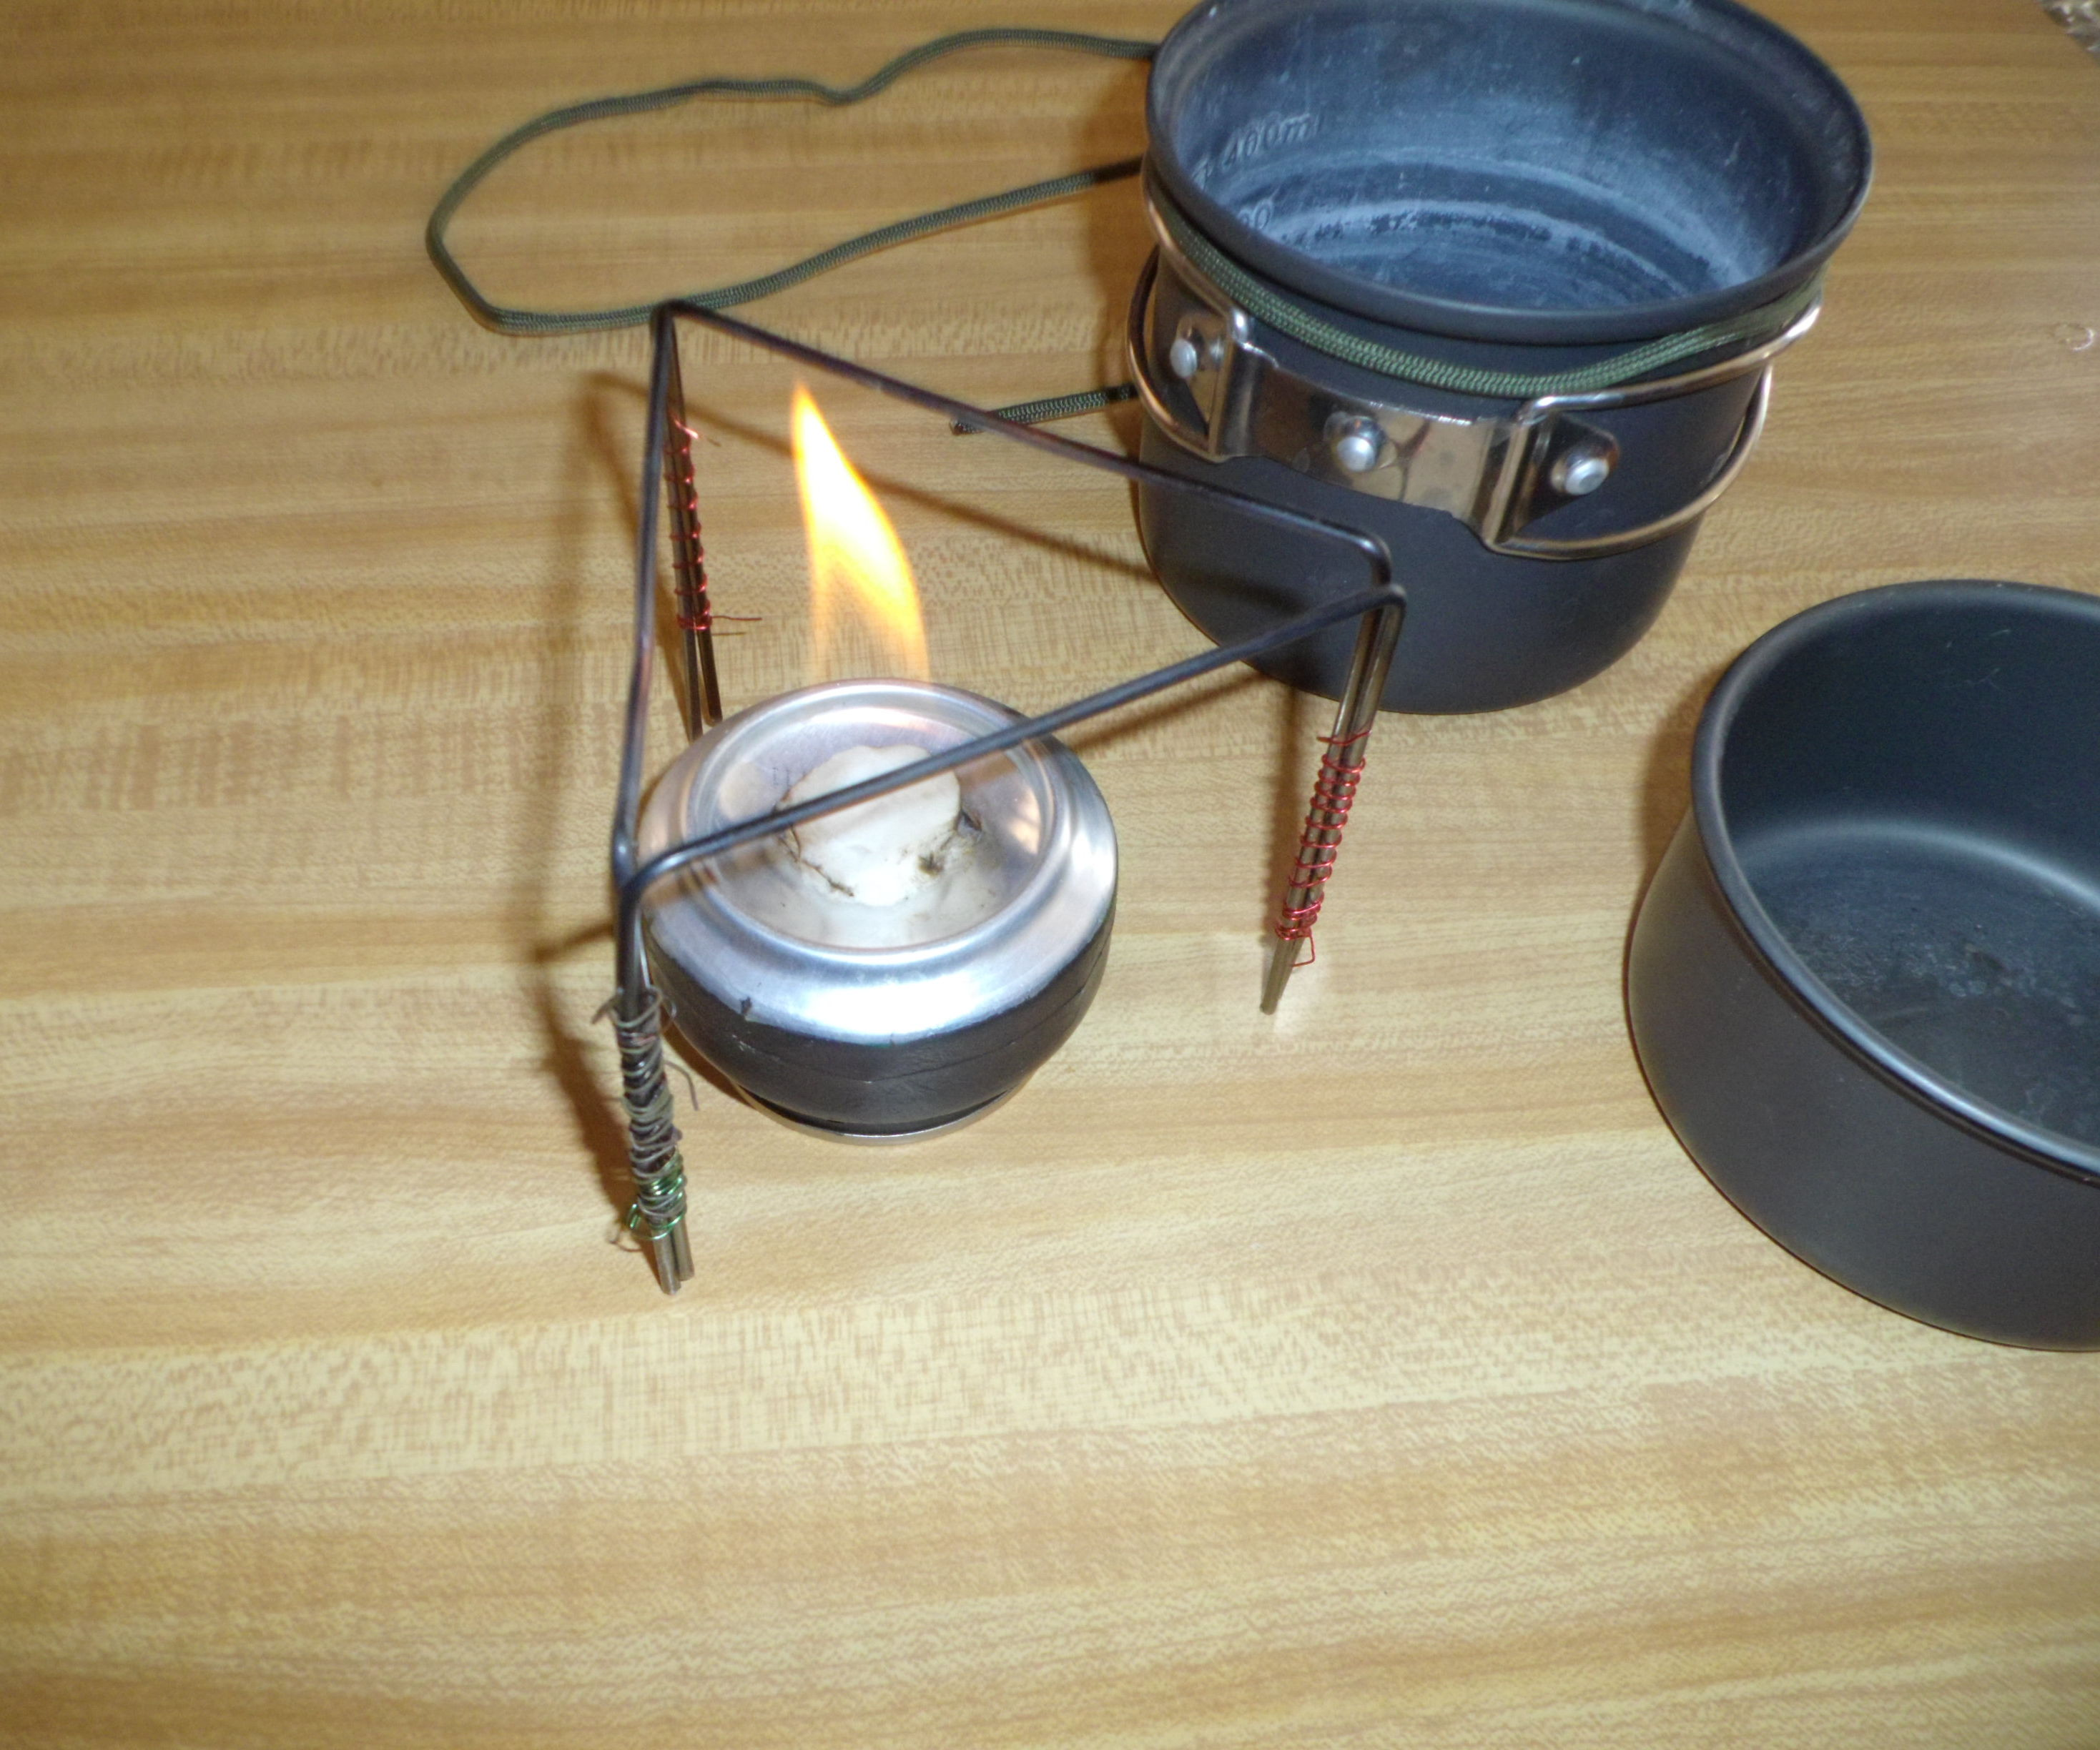 All In One Stove